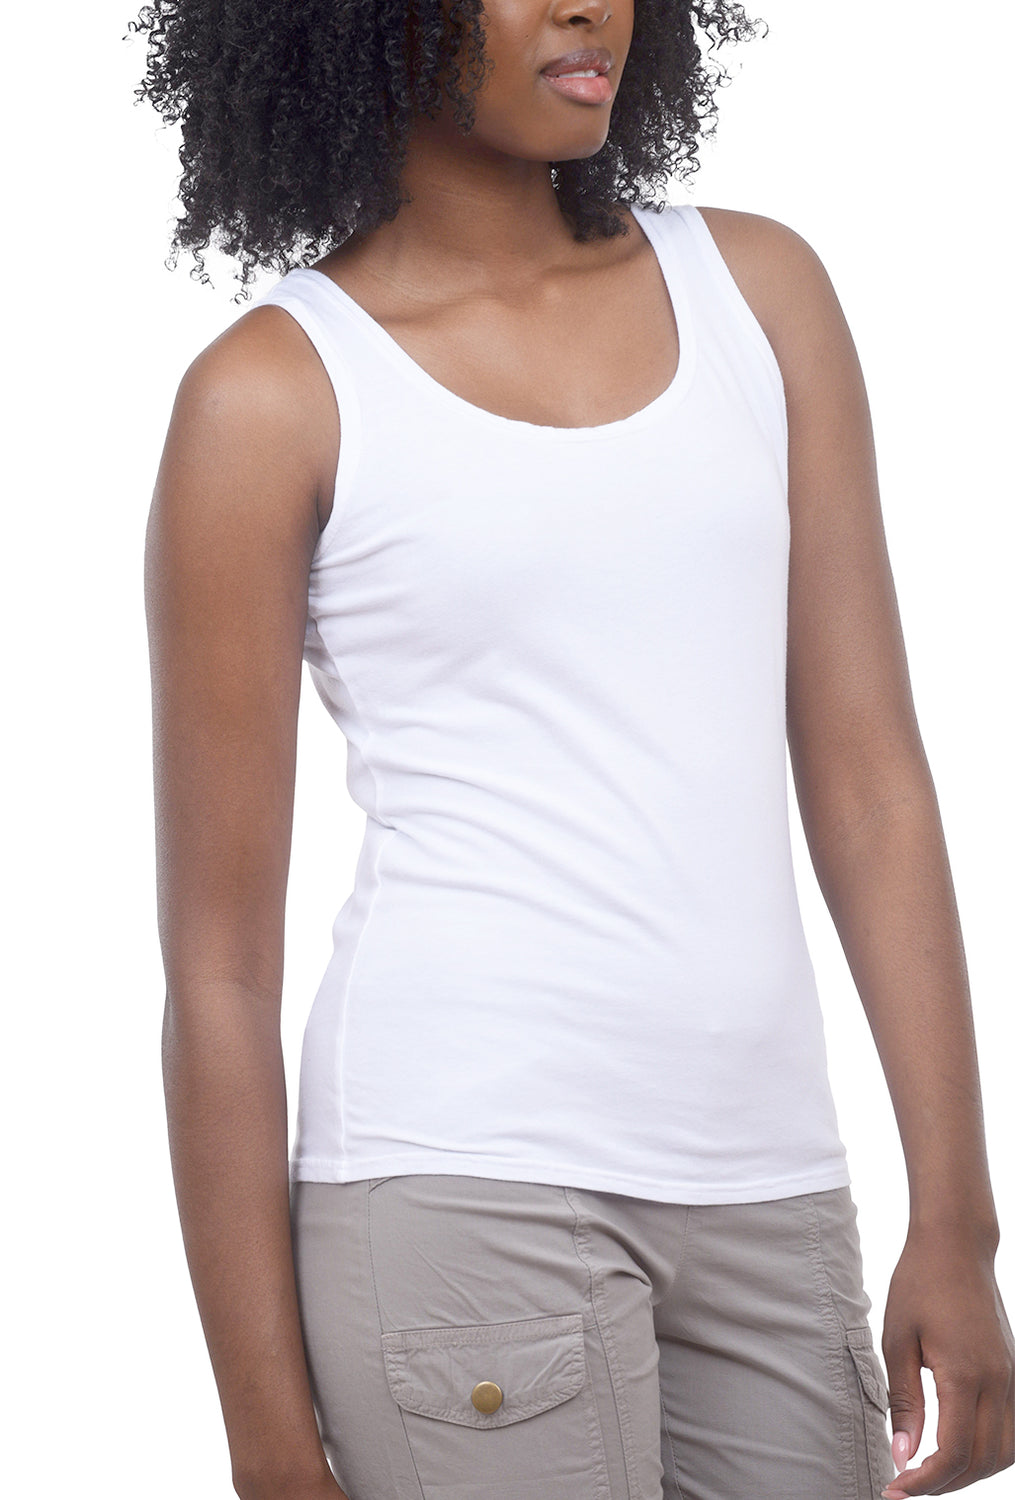 Cut Loose Even Longer Tank, White